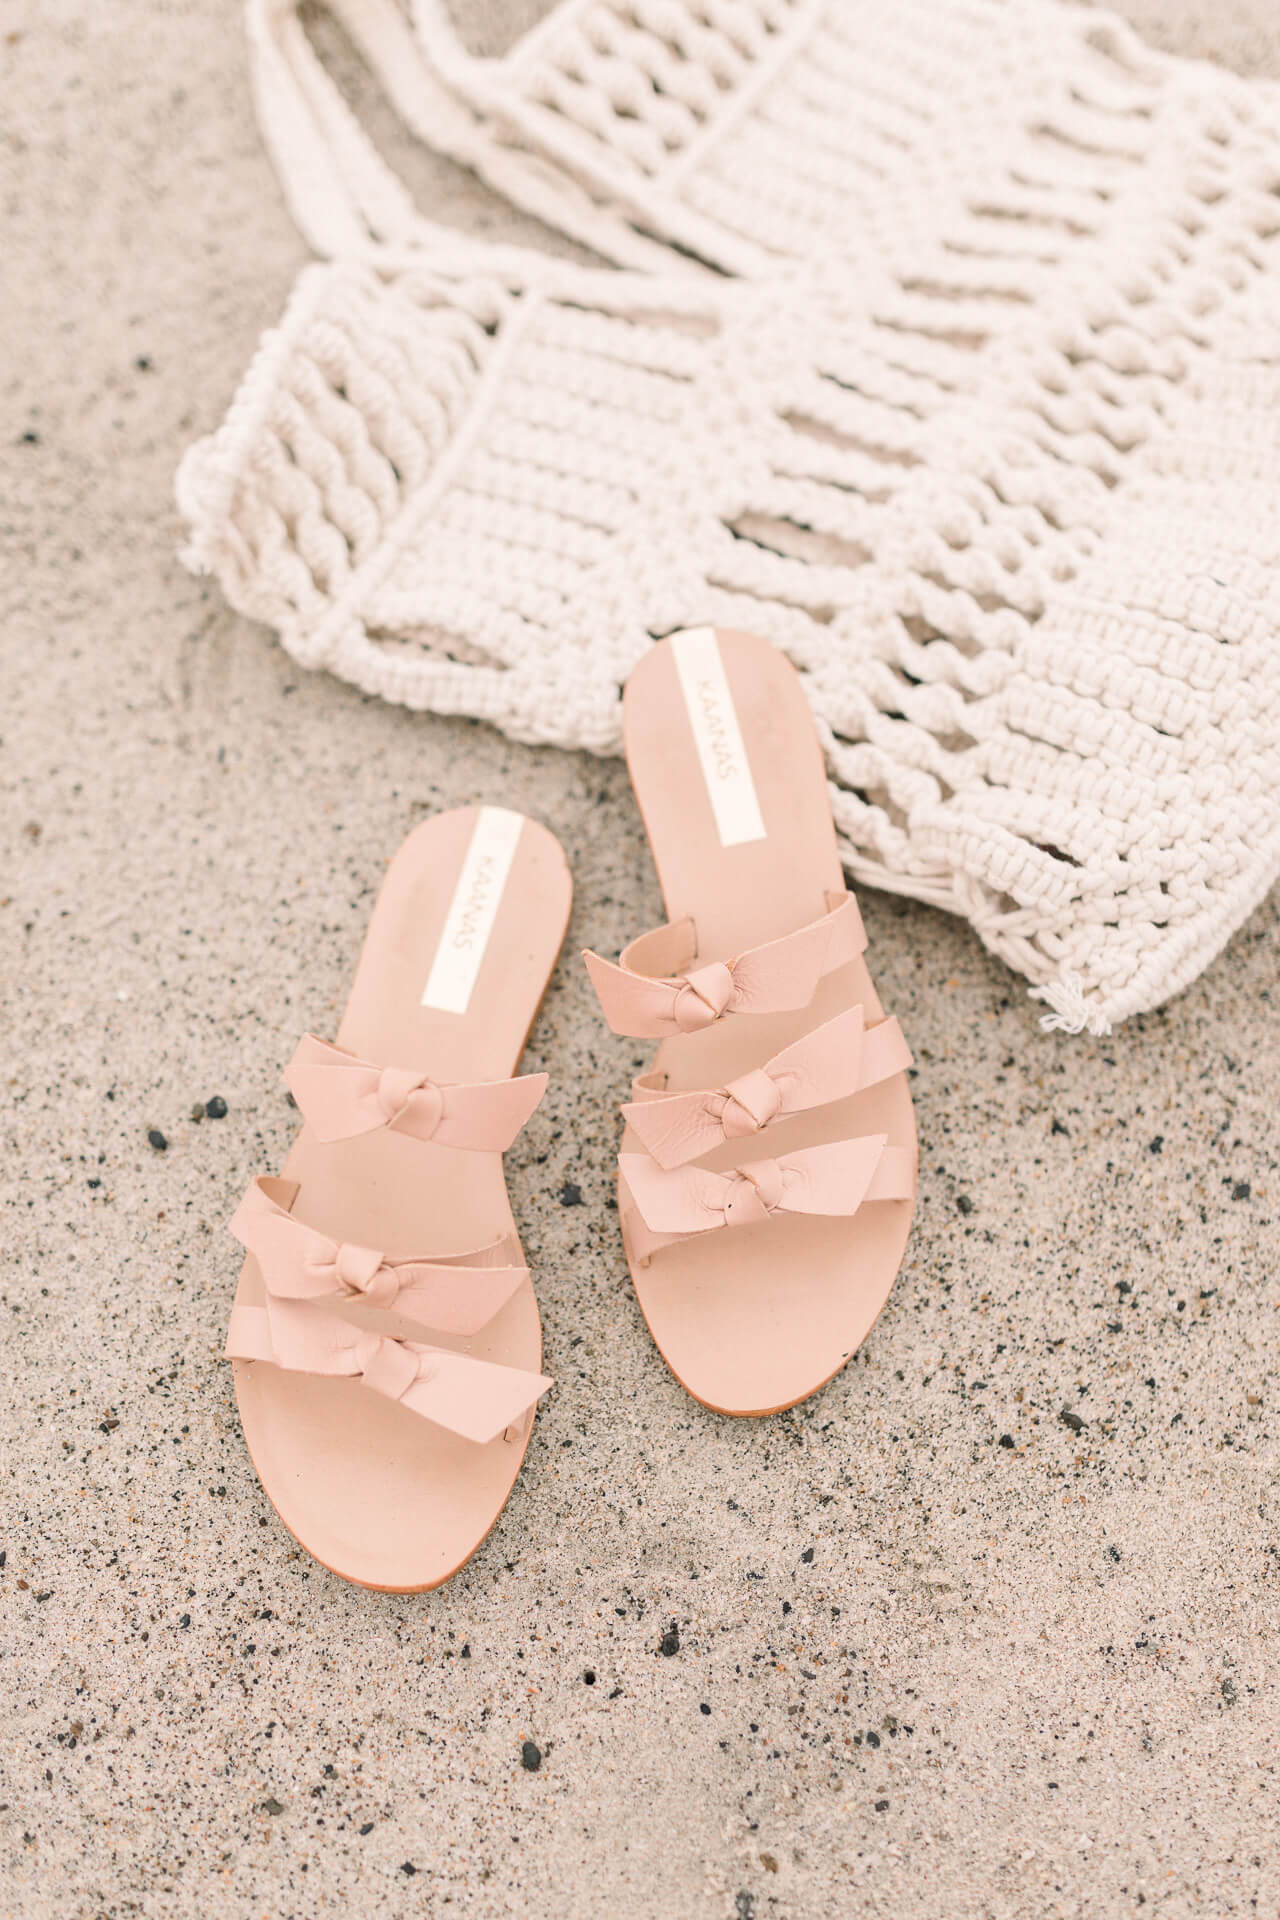 Adorable bow sandals to wear to the beach - M Loves M